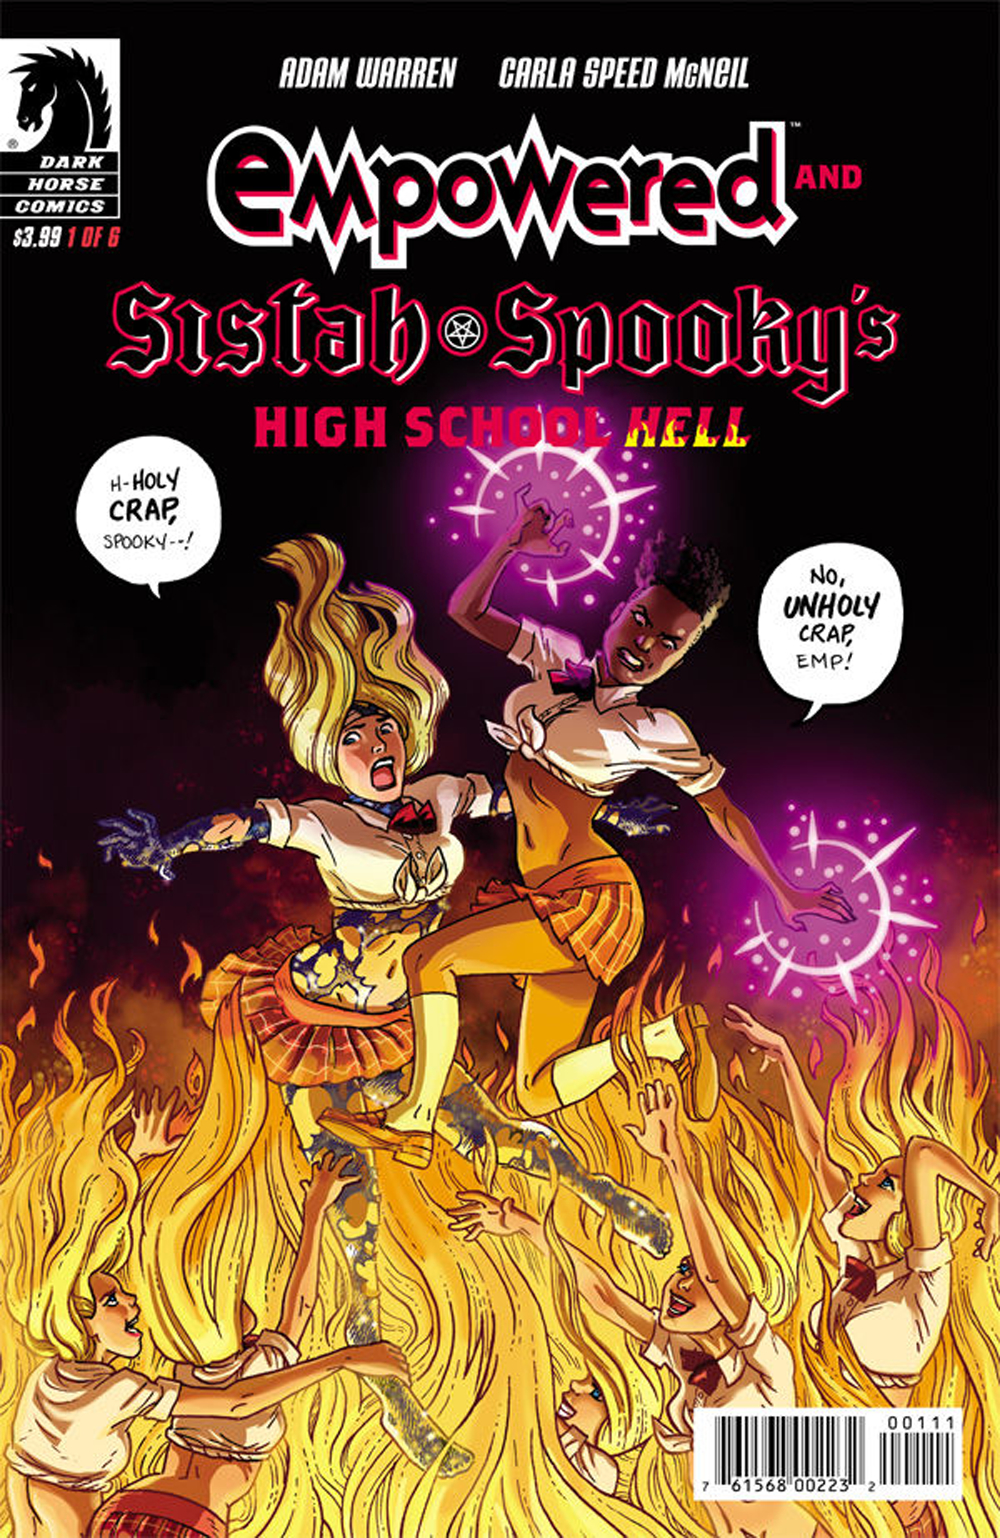 EMPOWERED & SISTAH SPOOKYS HIGH SCHOOL HELL #1